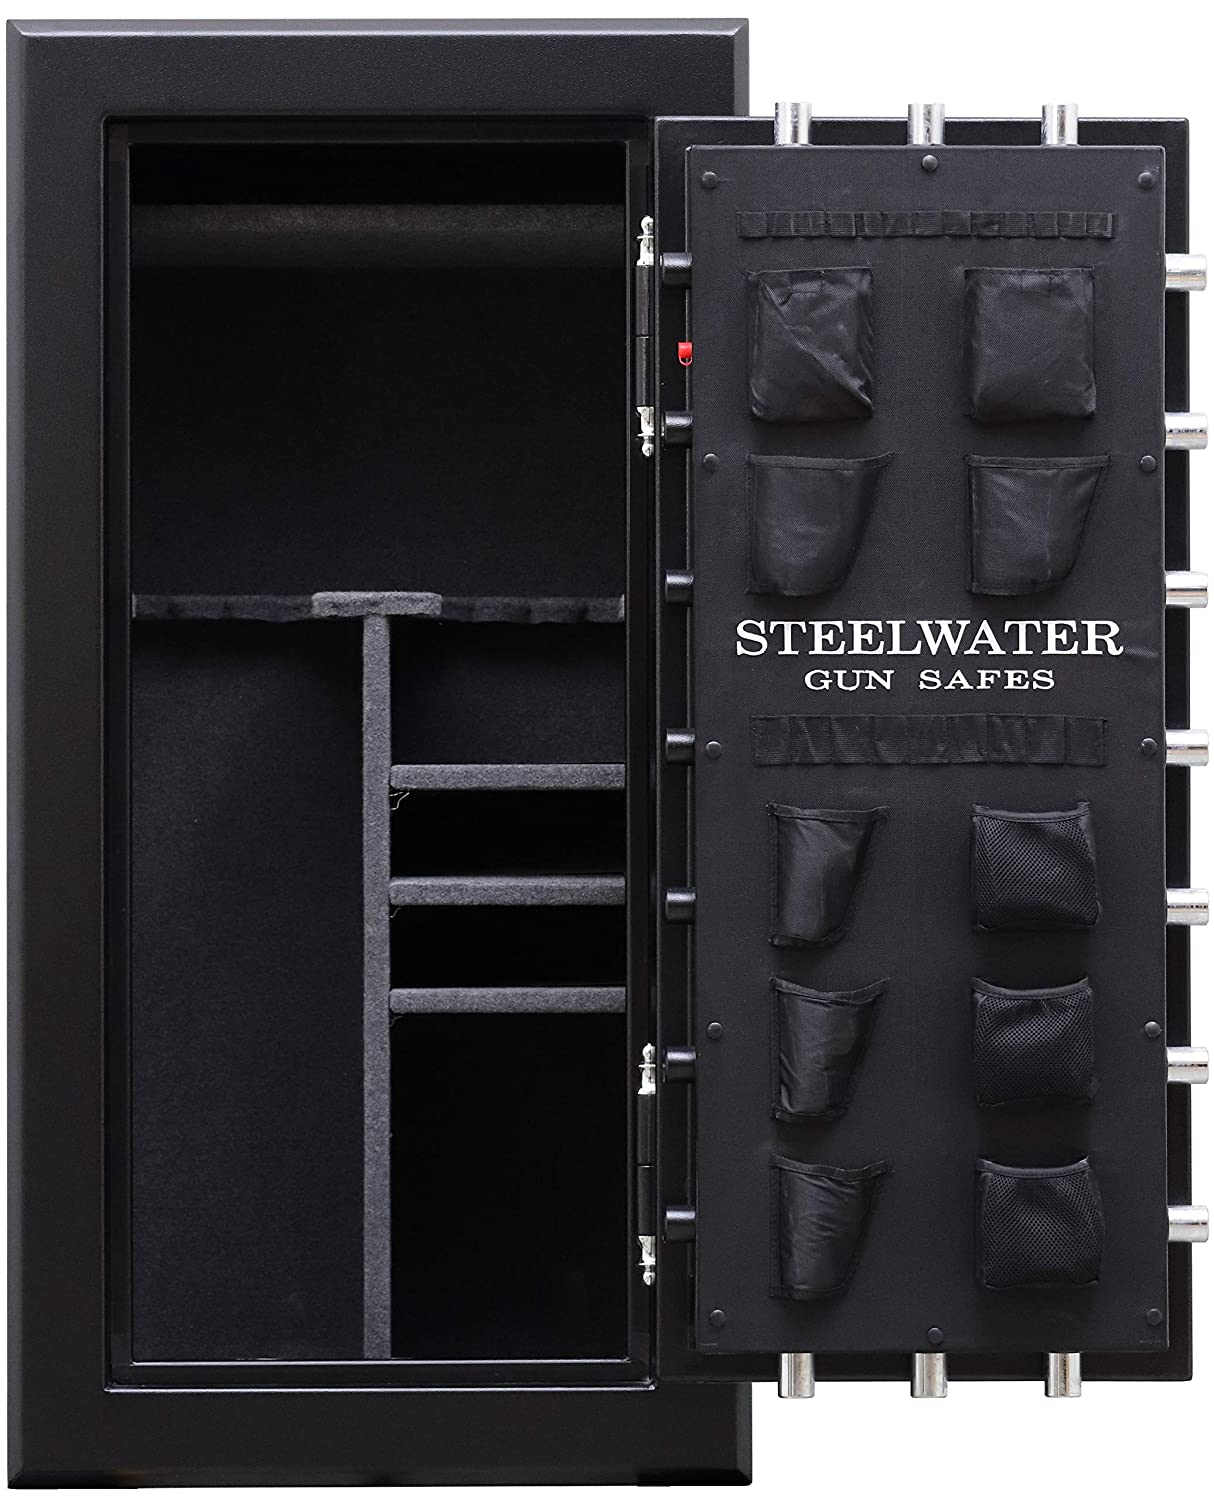 Steelwater Gun Safe Review